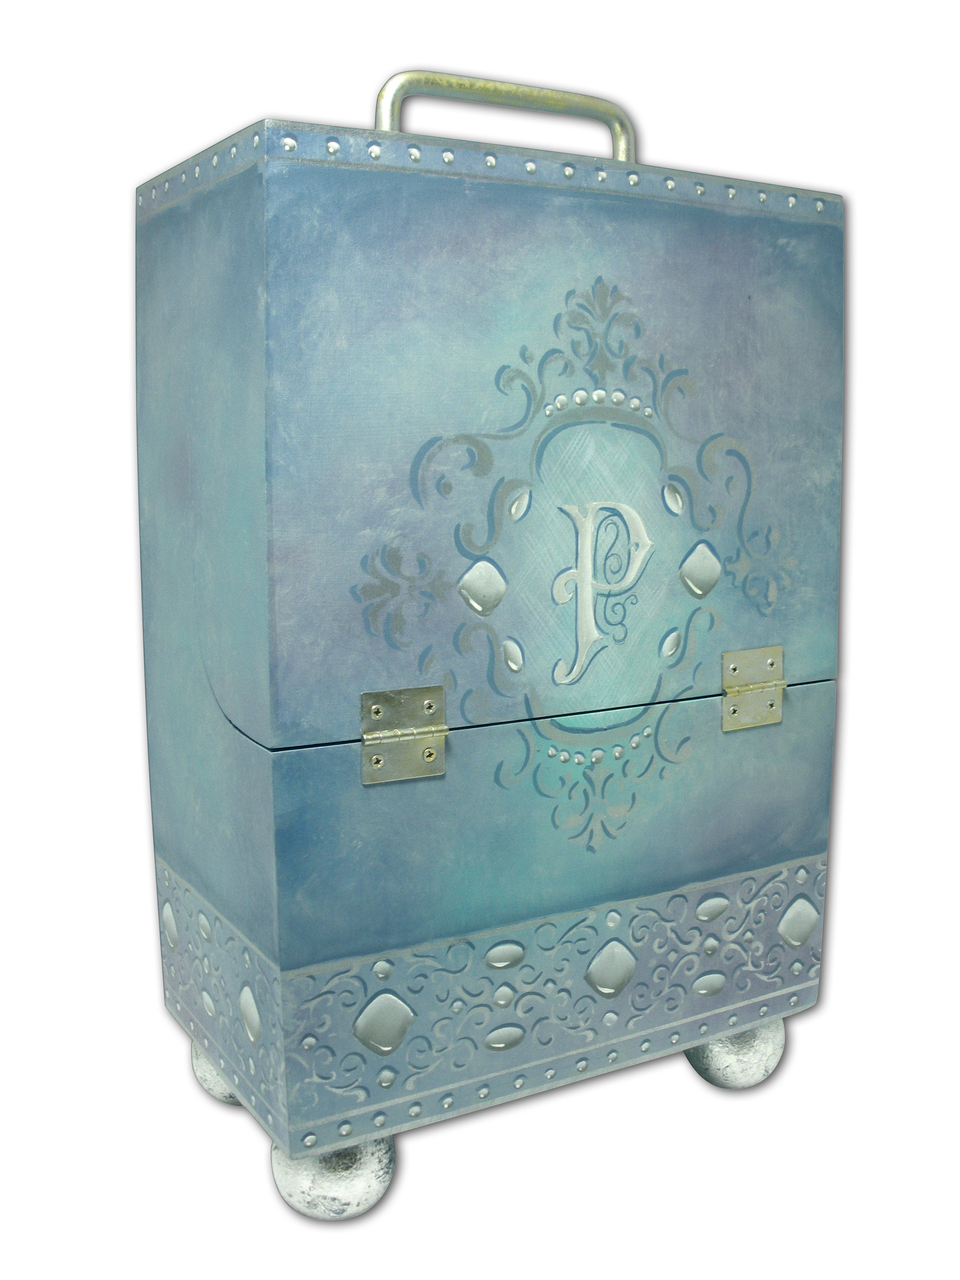 Enchanted Brush Carriage - E-Packet - Patricia Rawlinson